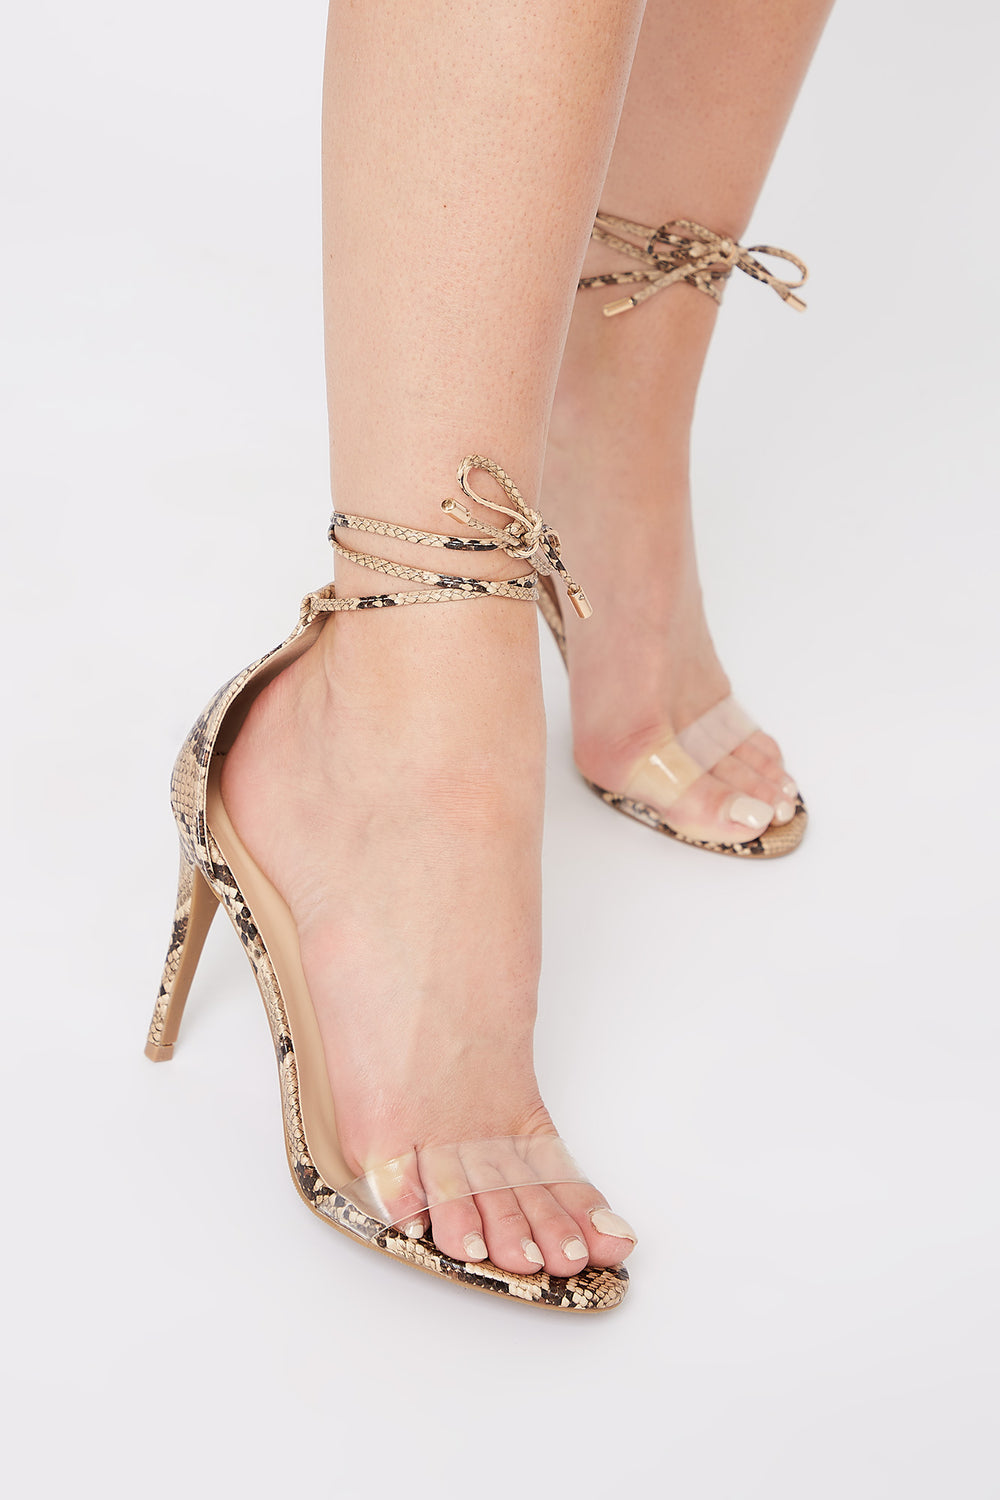 Clear Band Tie-Up Stiletto Sandal Black with White